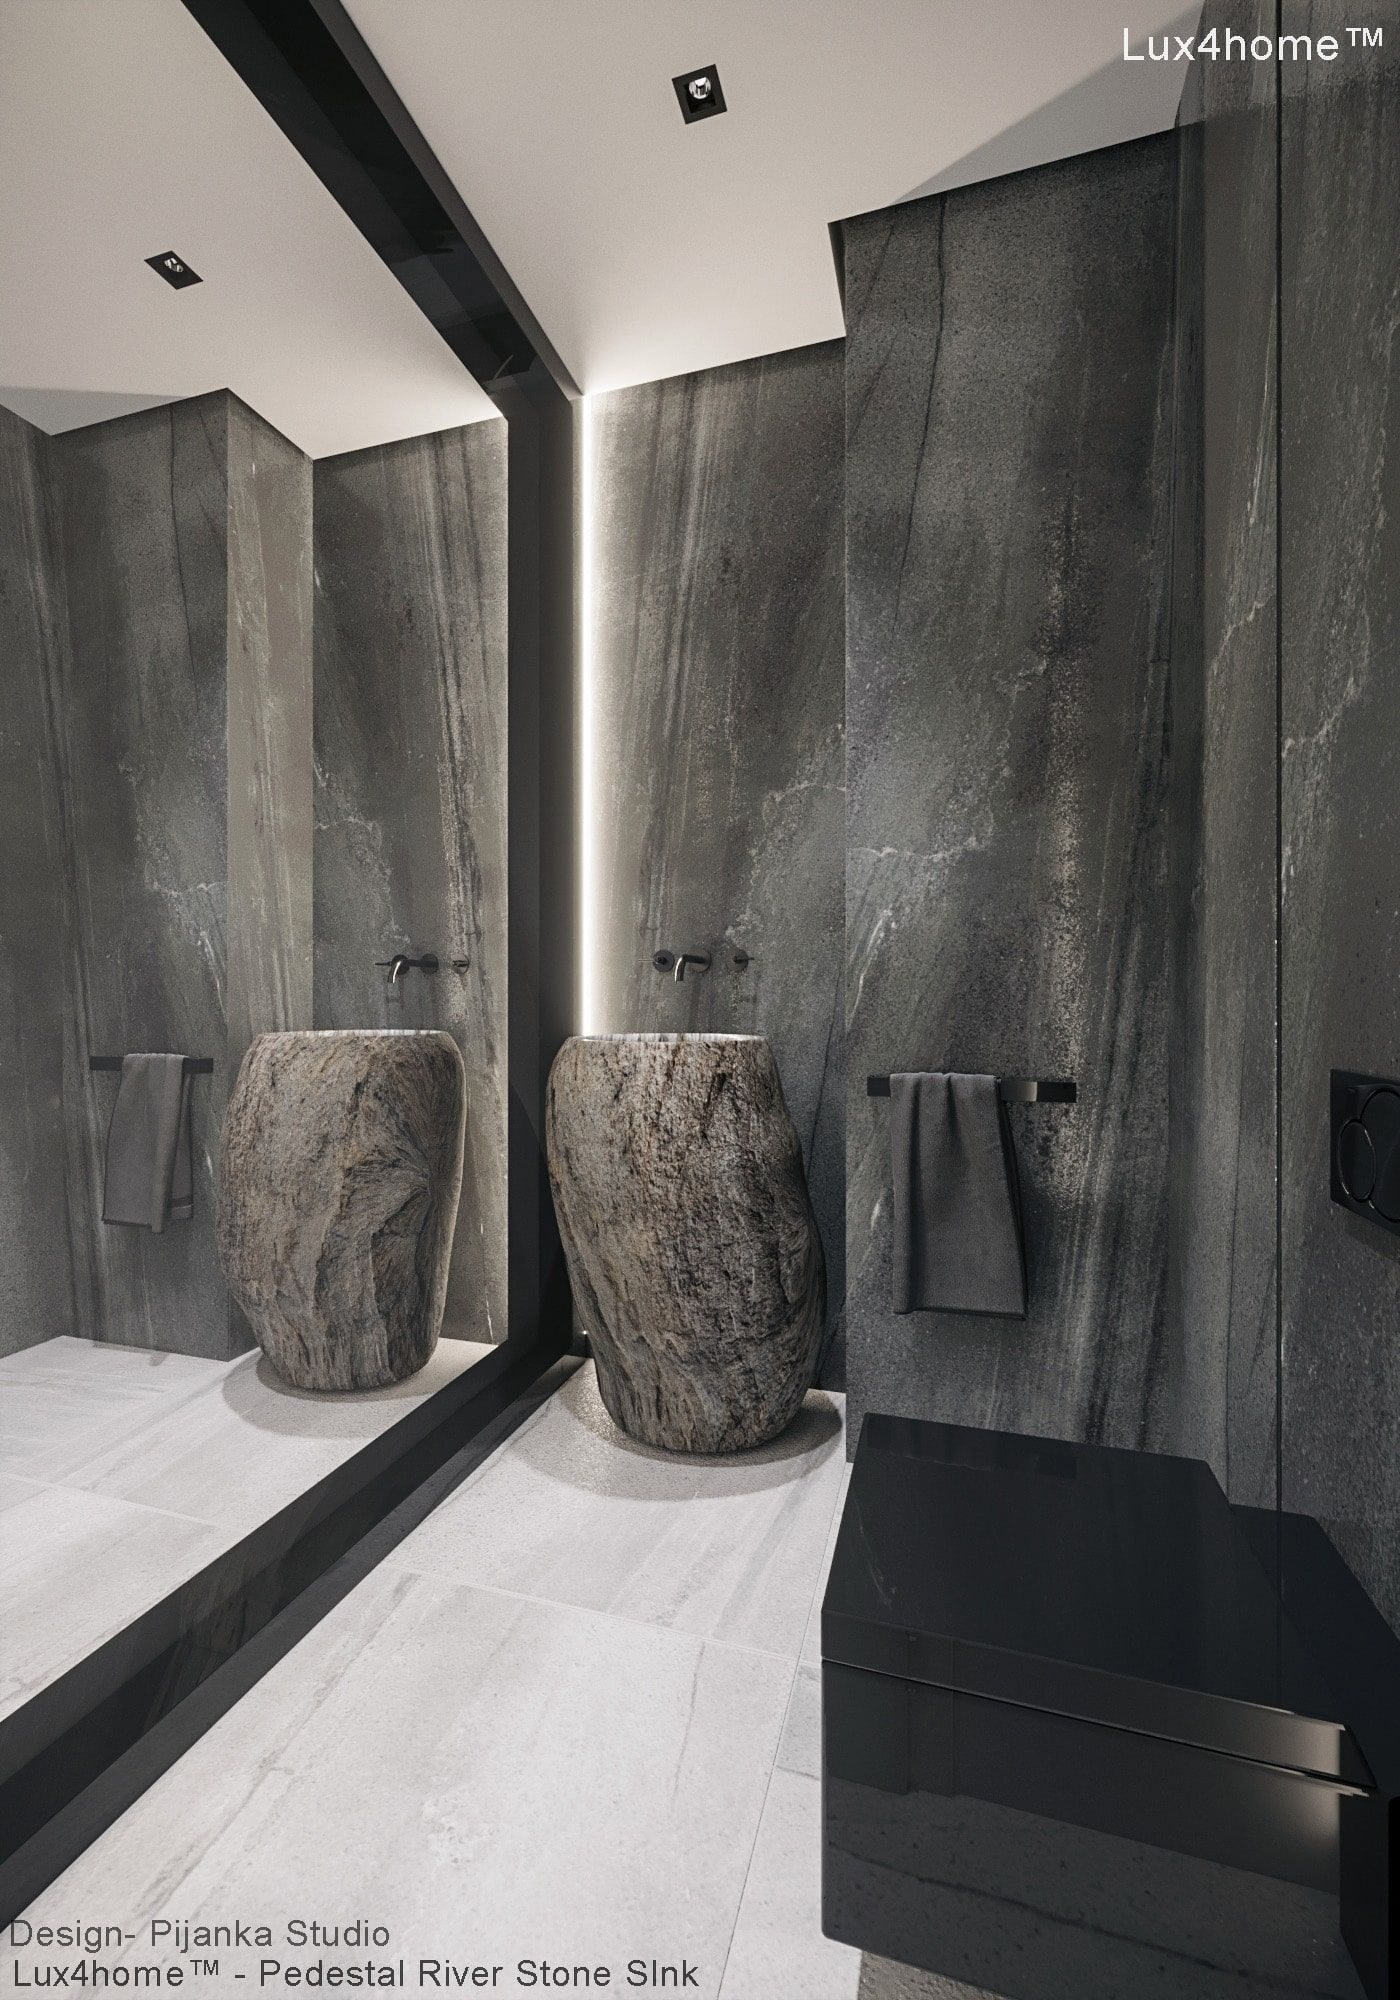 Stone Sinks Collection Made By Lux4home In Indonesia Stone Sink Pedestal Sink Stone Bathroom Sink